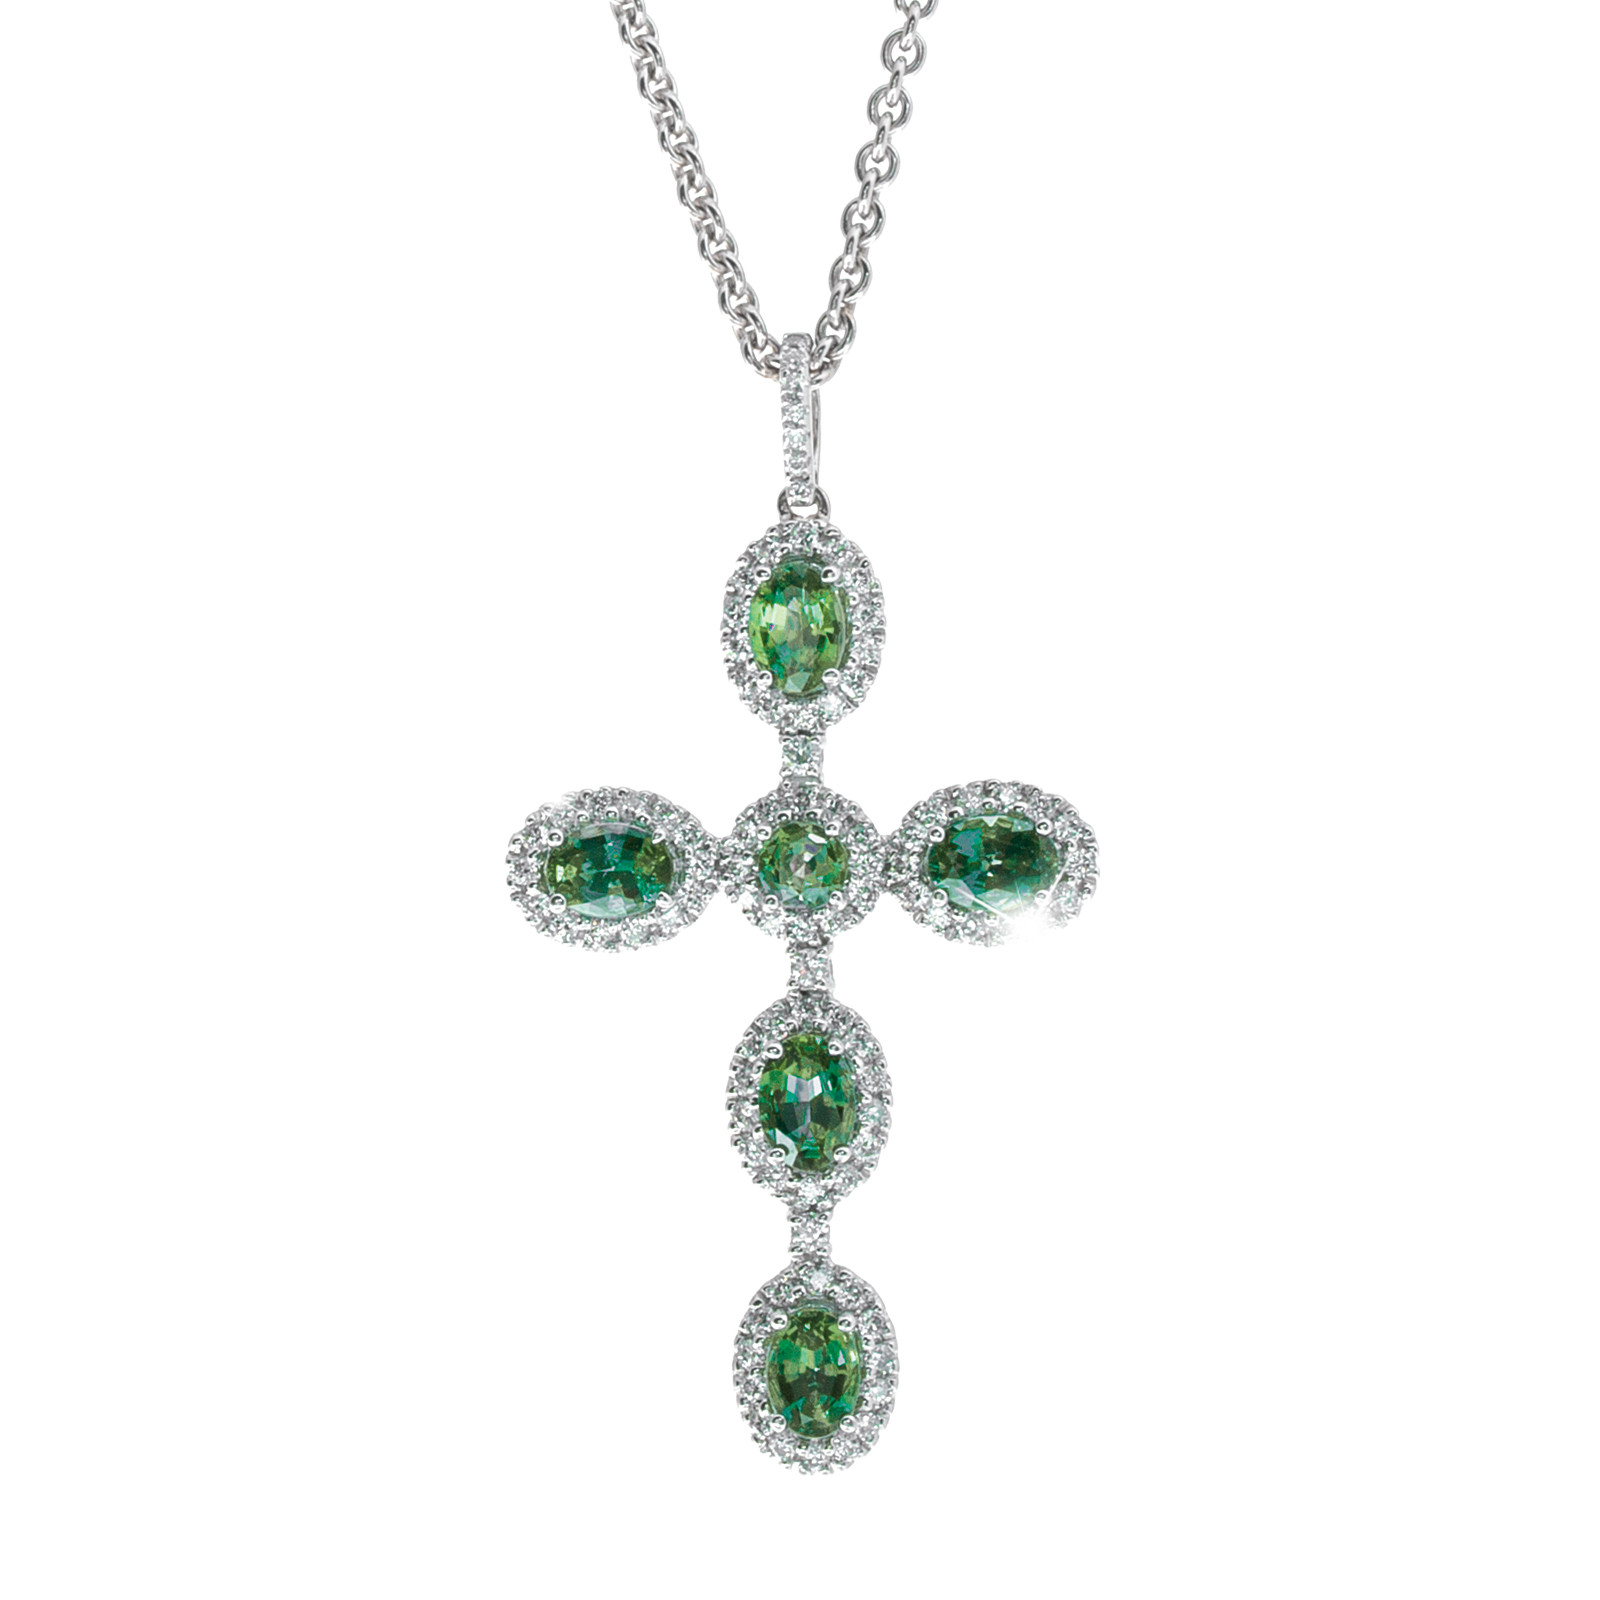 cz halo glitzy rocks necklace of june gemstone birthstone alexandrite picture p sterling silver